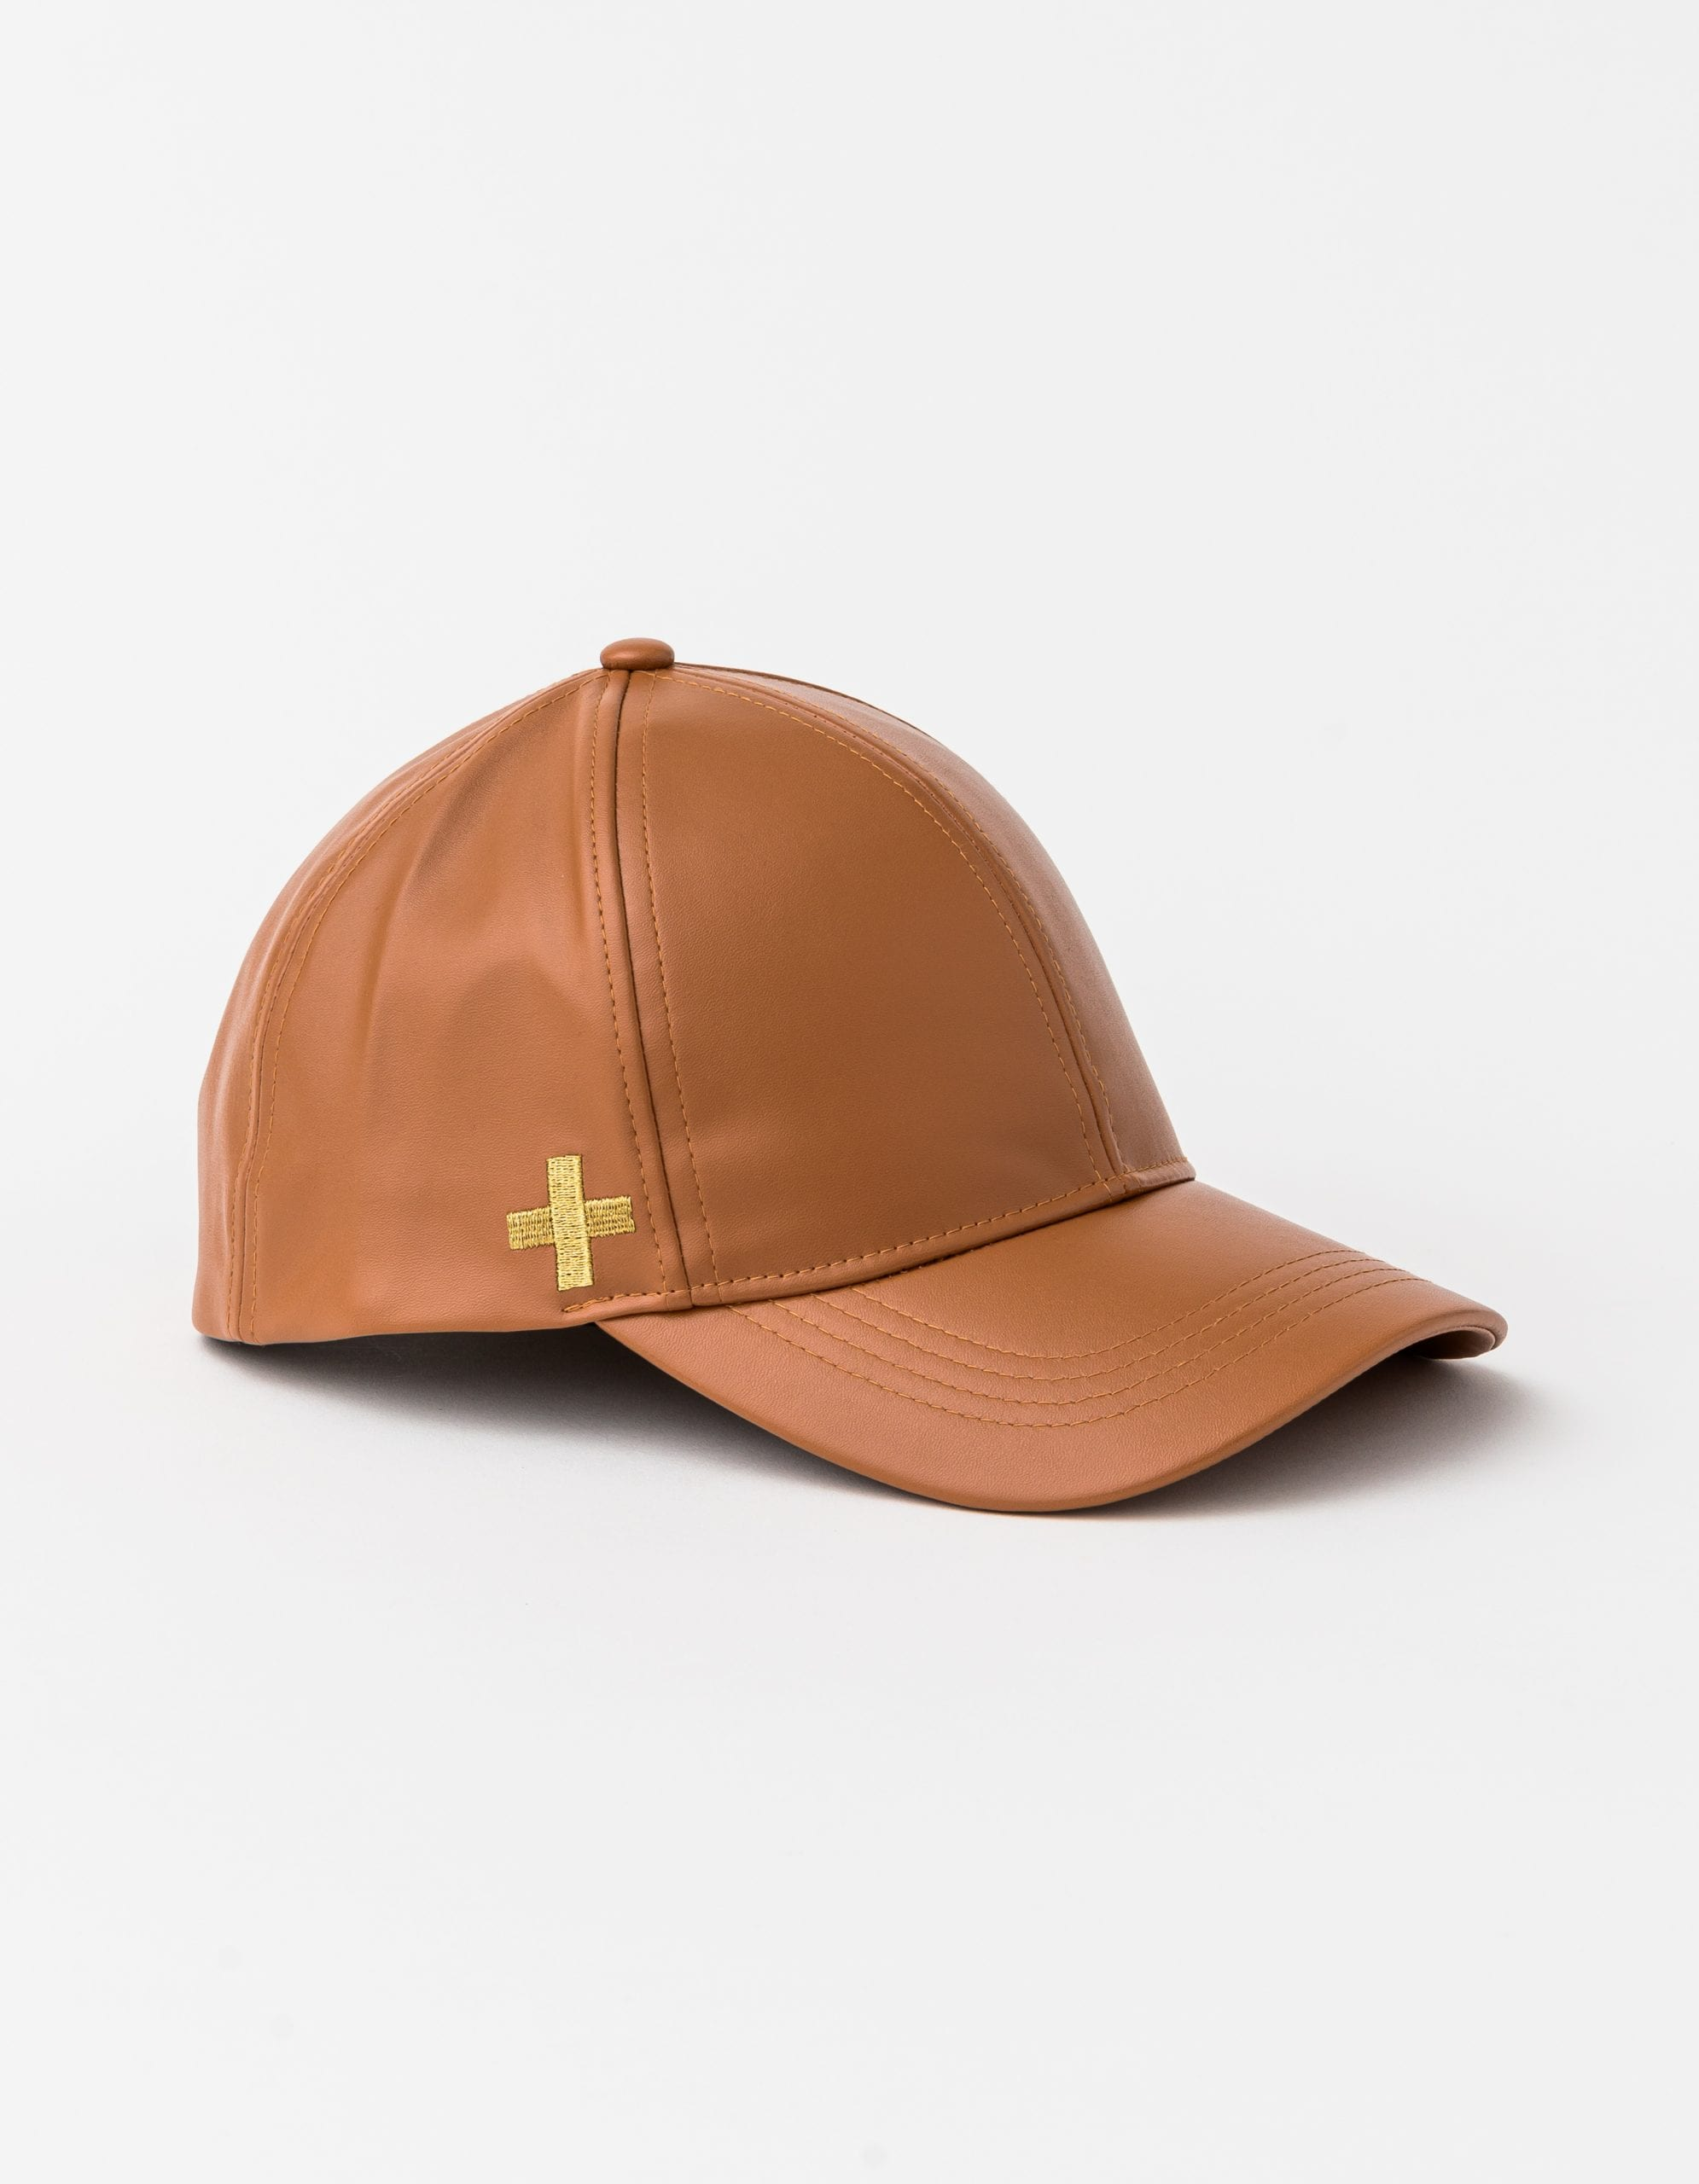 Cap by Stella and Gemma Caramel with Gold Cross